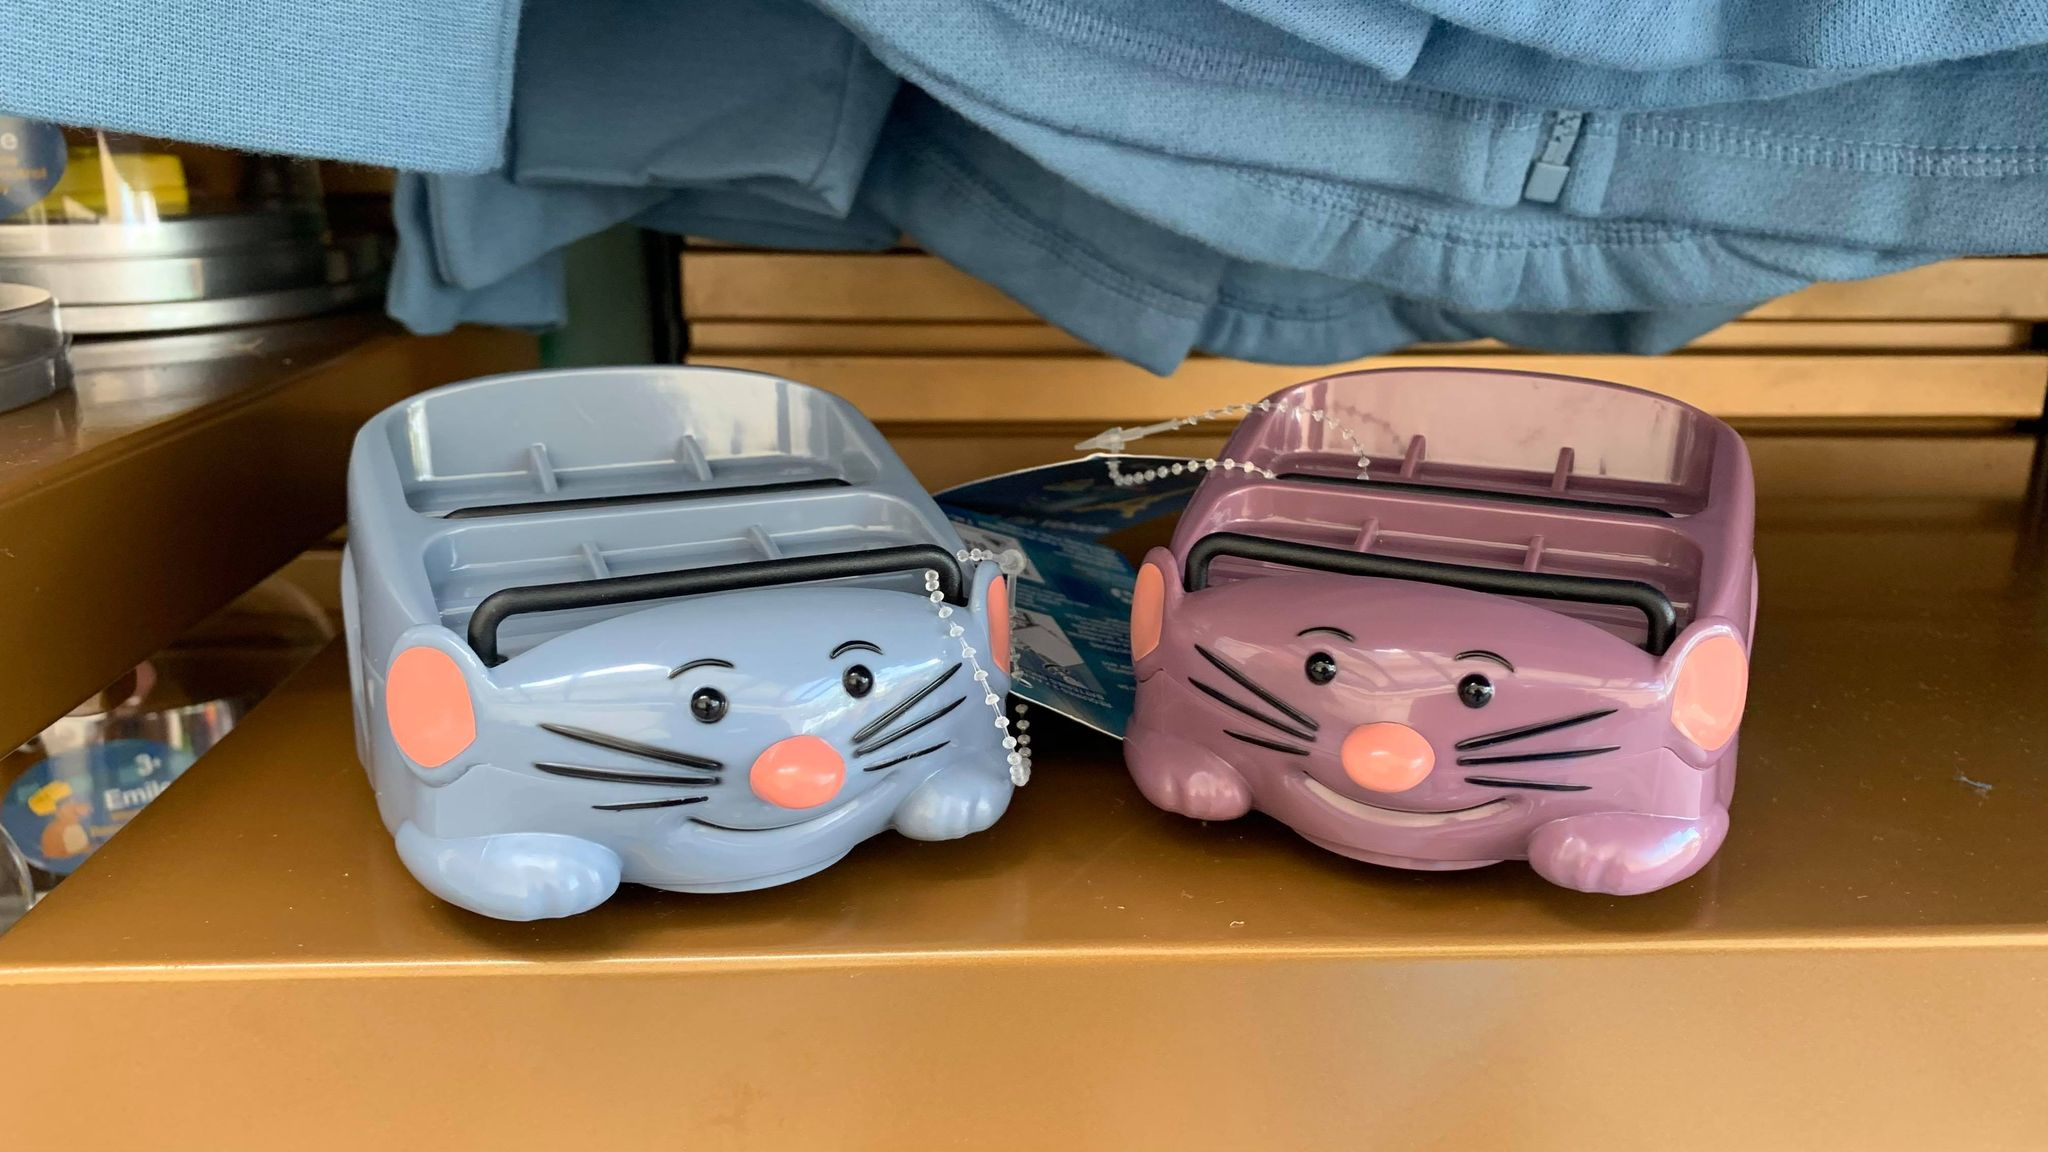 First look at the new Remy's Ratatouille Adventure line of merch coming soon! 20